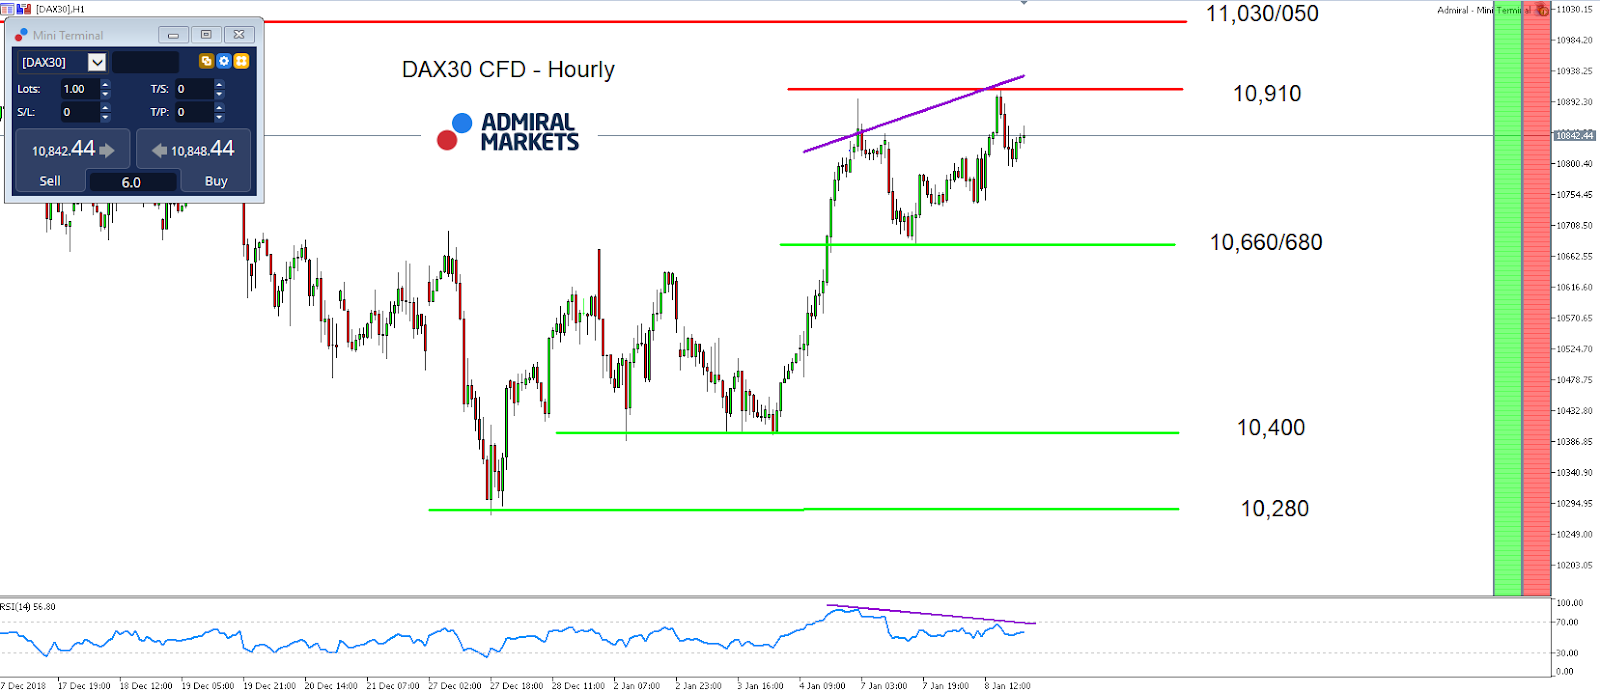 DAX30 CFD Hourly Chart - MetaTrader 5 Supreme Edition